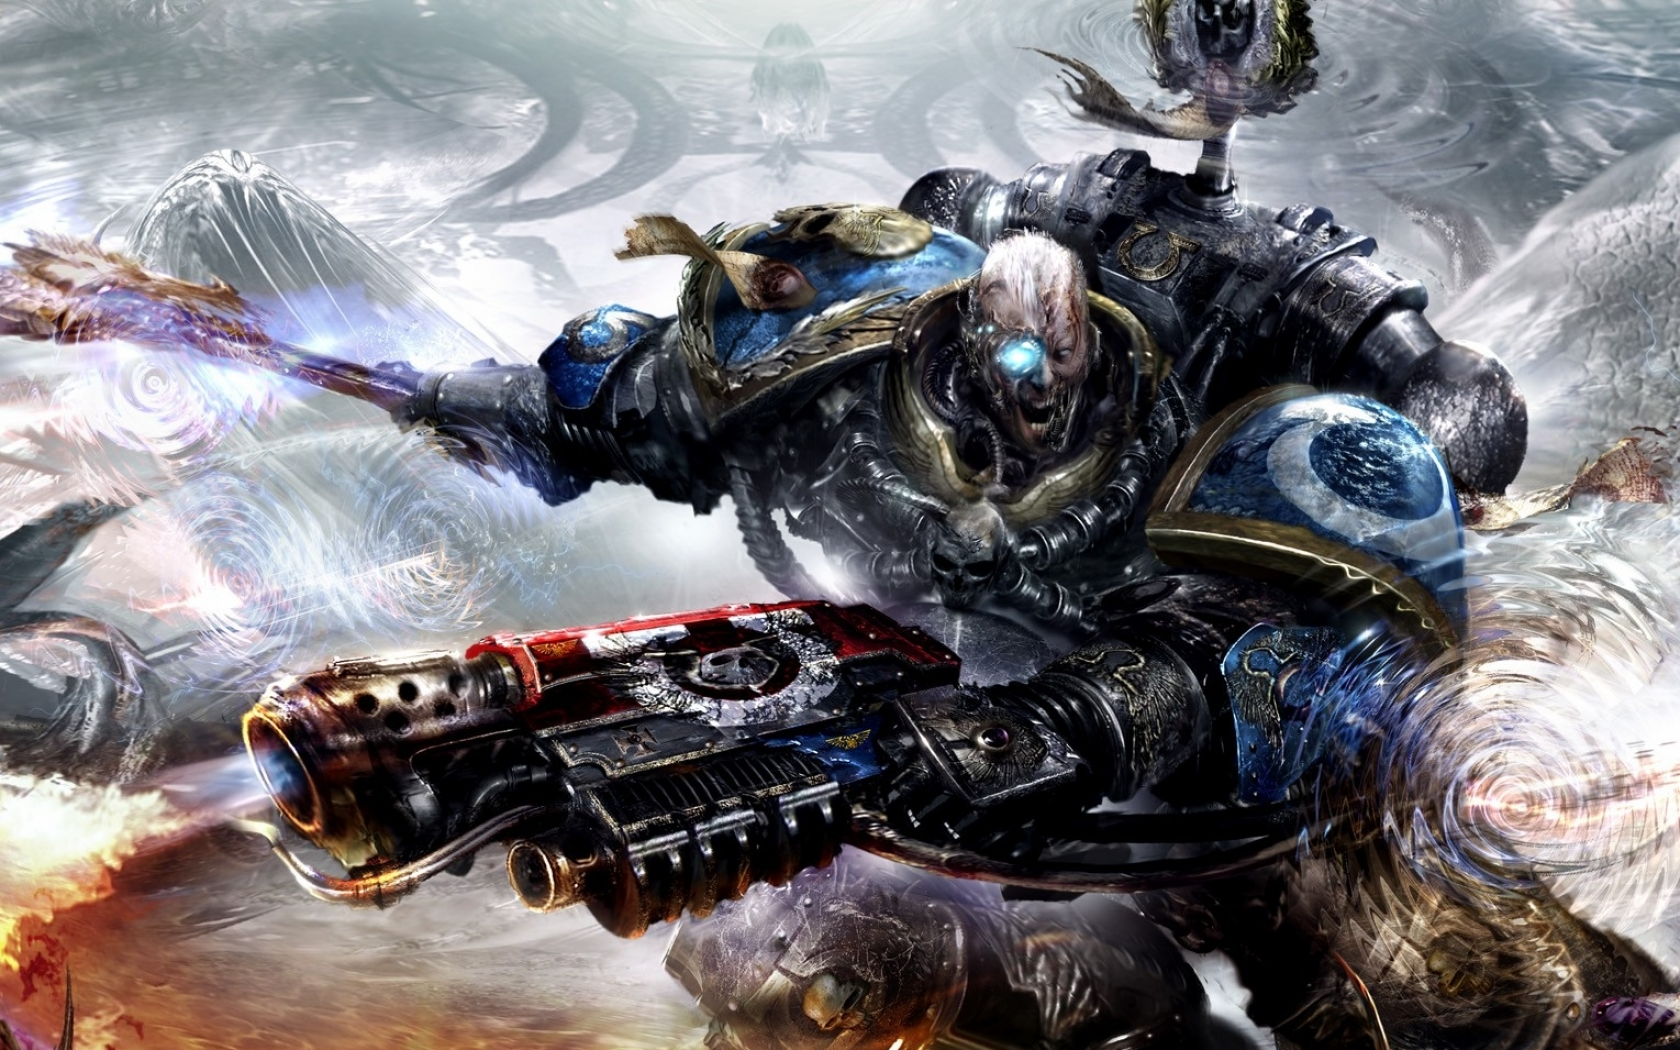 chaos space marines hate tyranids warhammer 40k 1529x1049 wallpaper 1680x1050